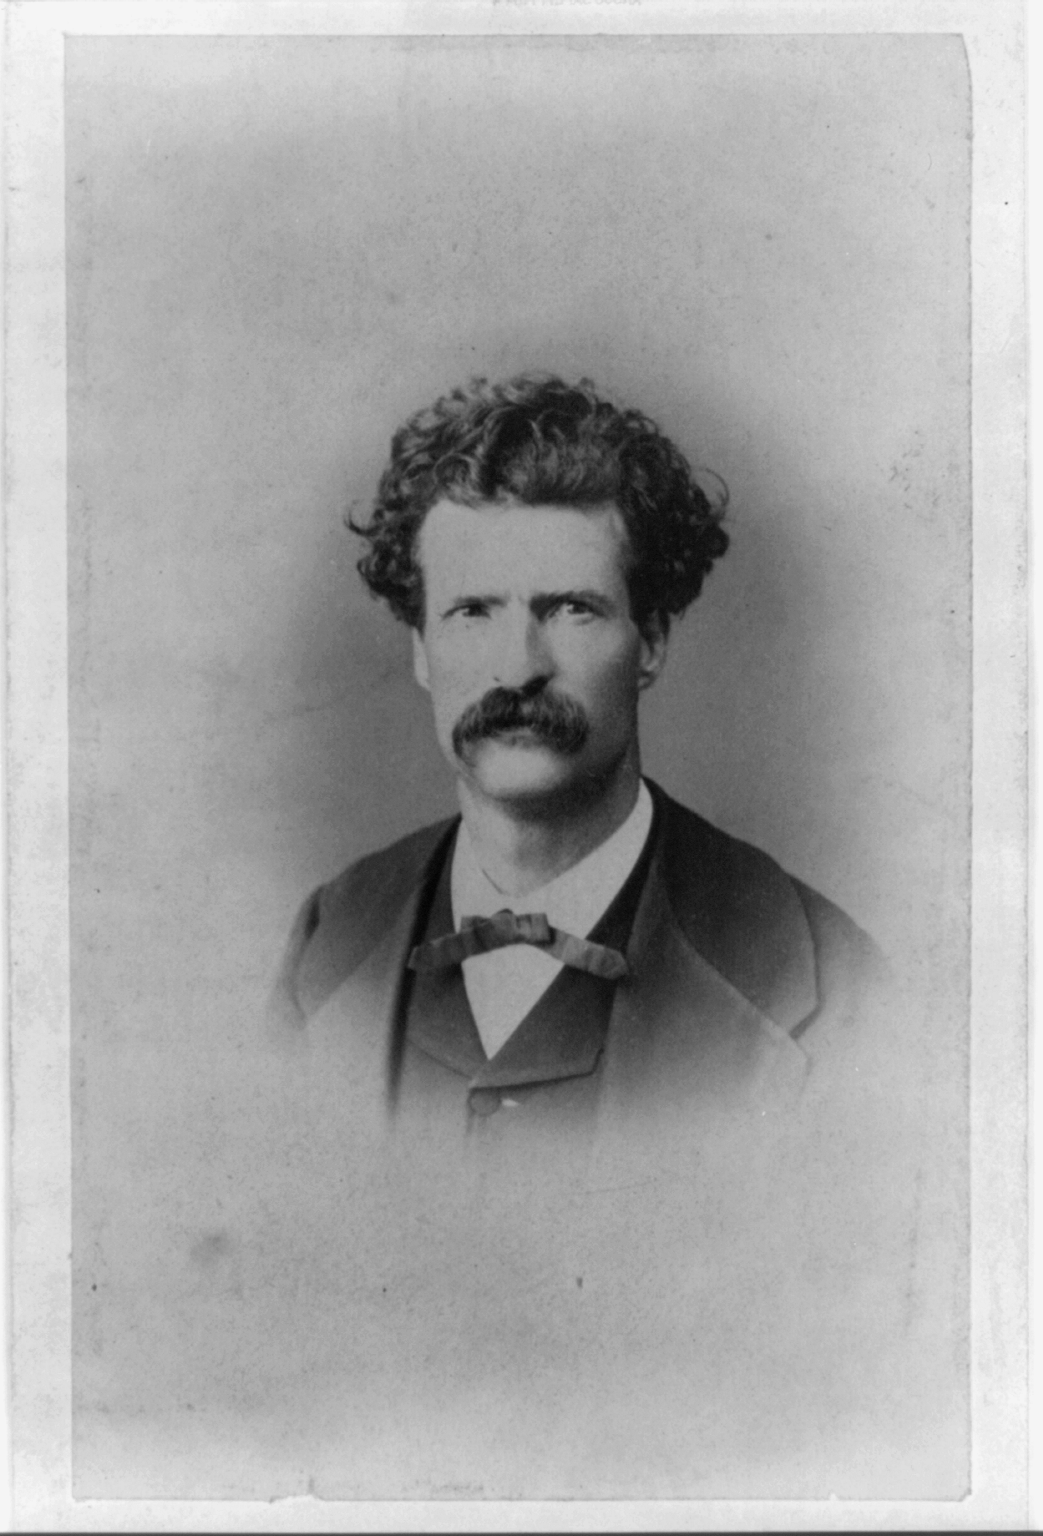 samule clemens Samuel clemens (mark twain) samuel clemens, better known by his pen name of mark twain, grew up in the mississippi river frontier town of hannibal, missouri.